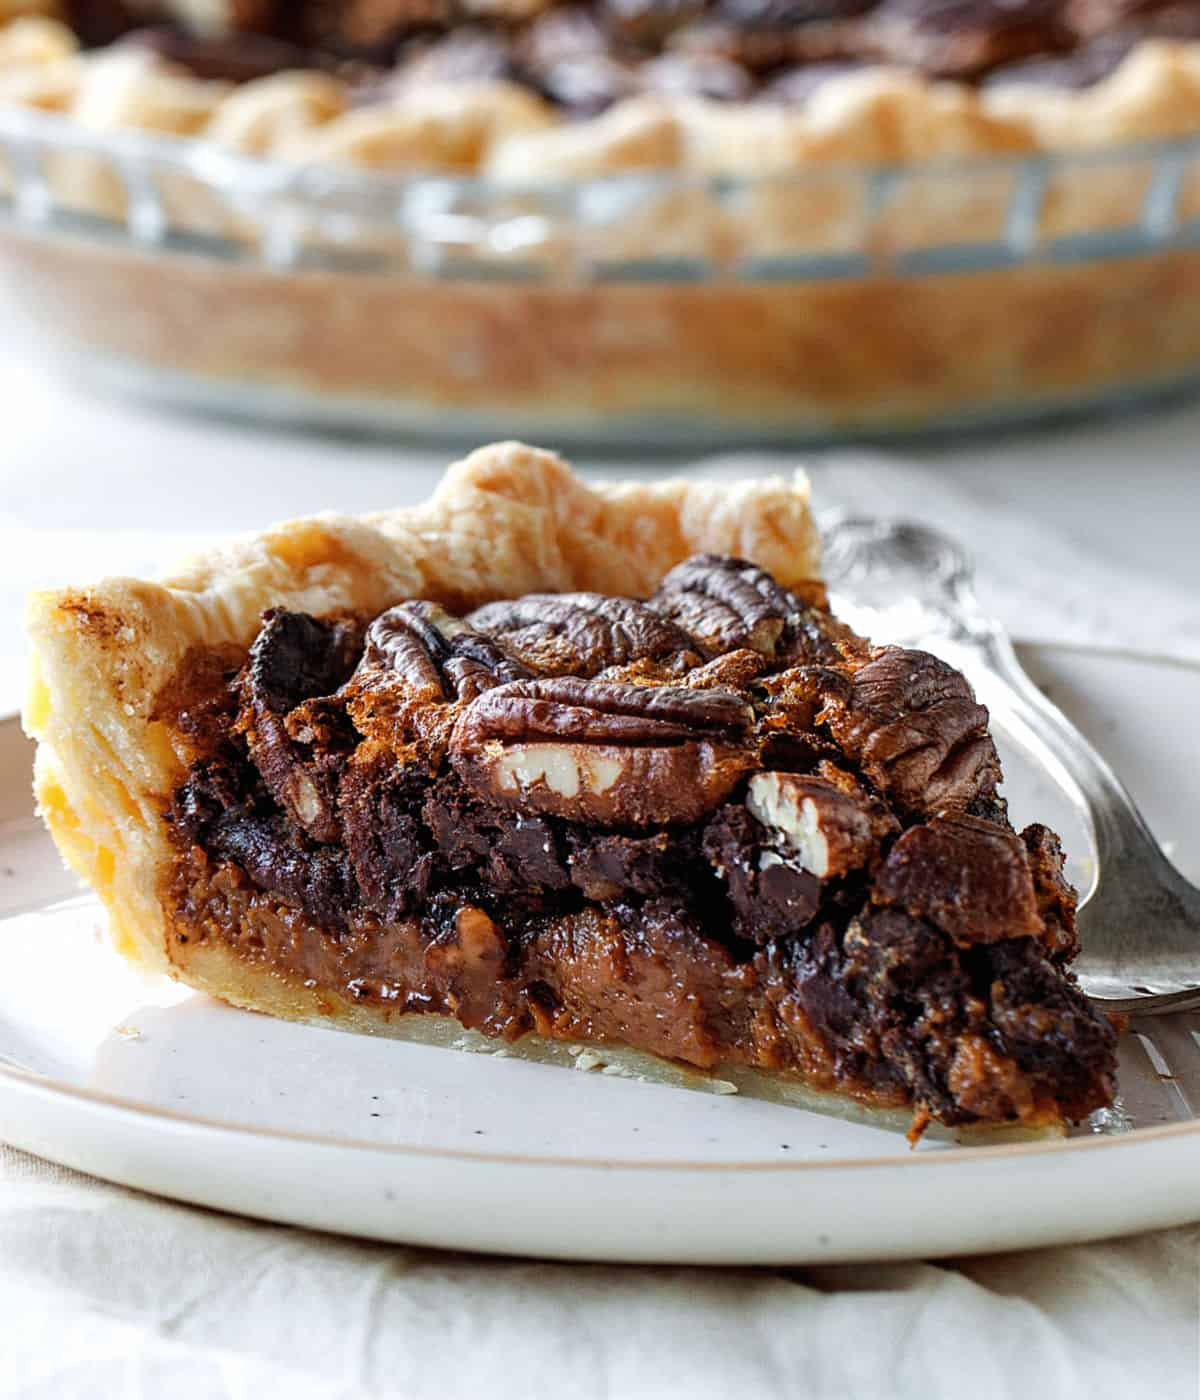 A single slice of chocolate pecan pie on white plate with fork, pie dish blurred in background